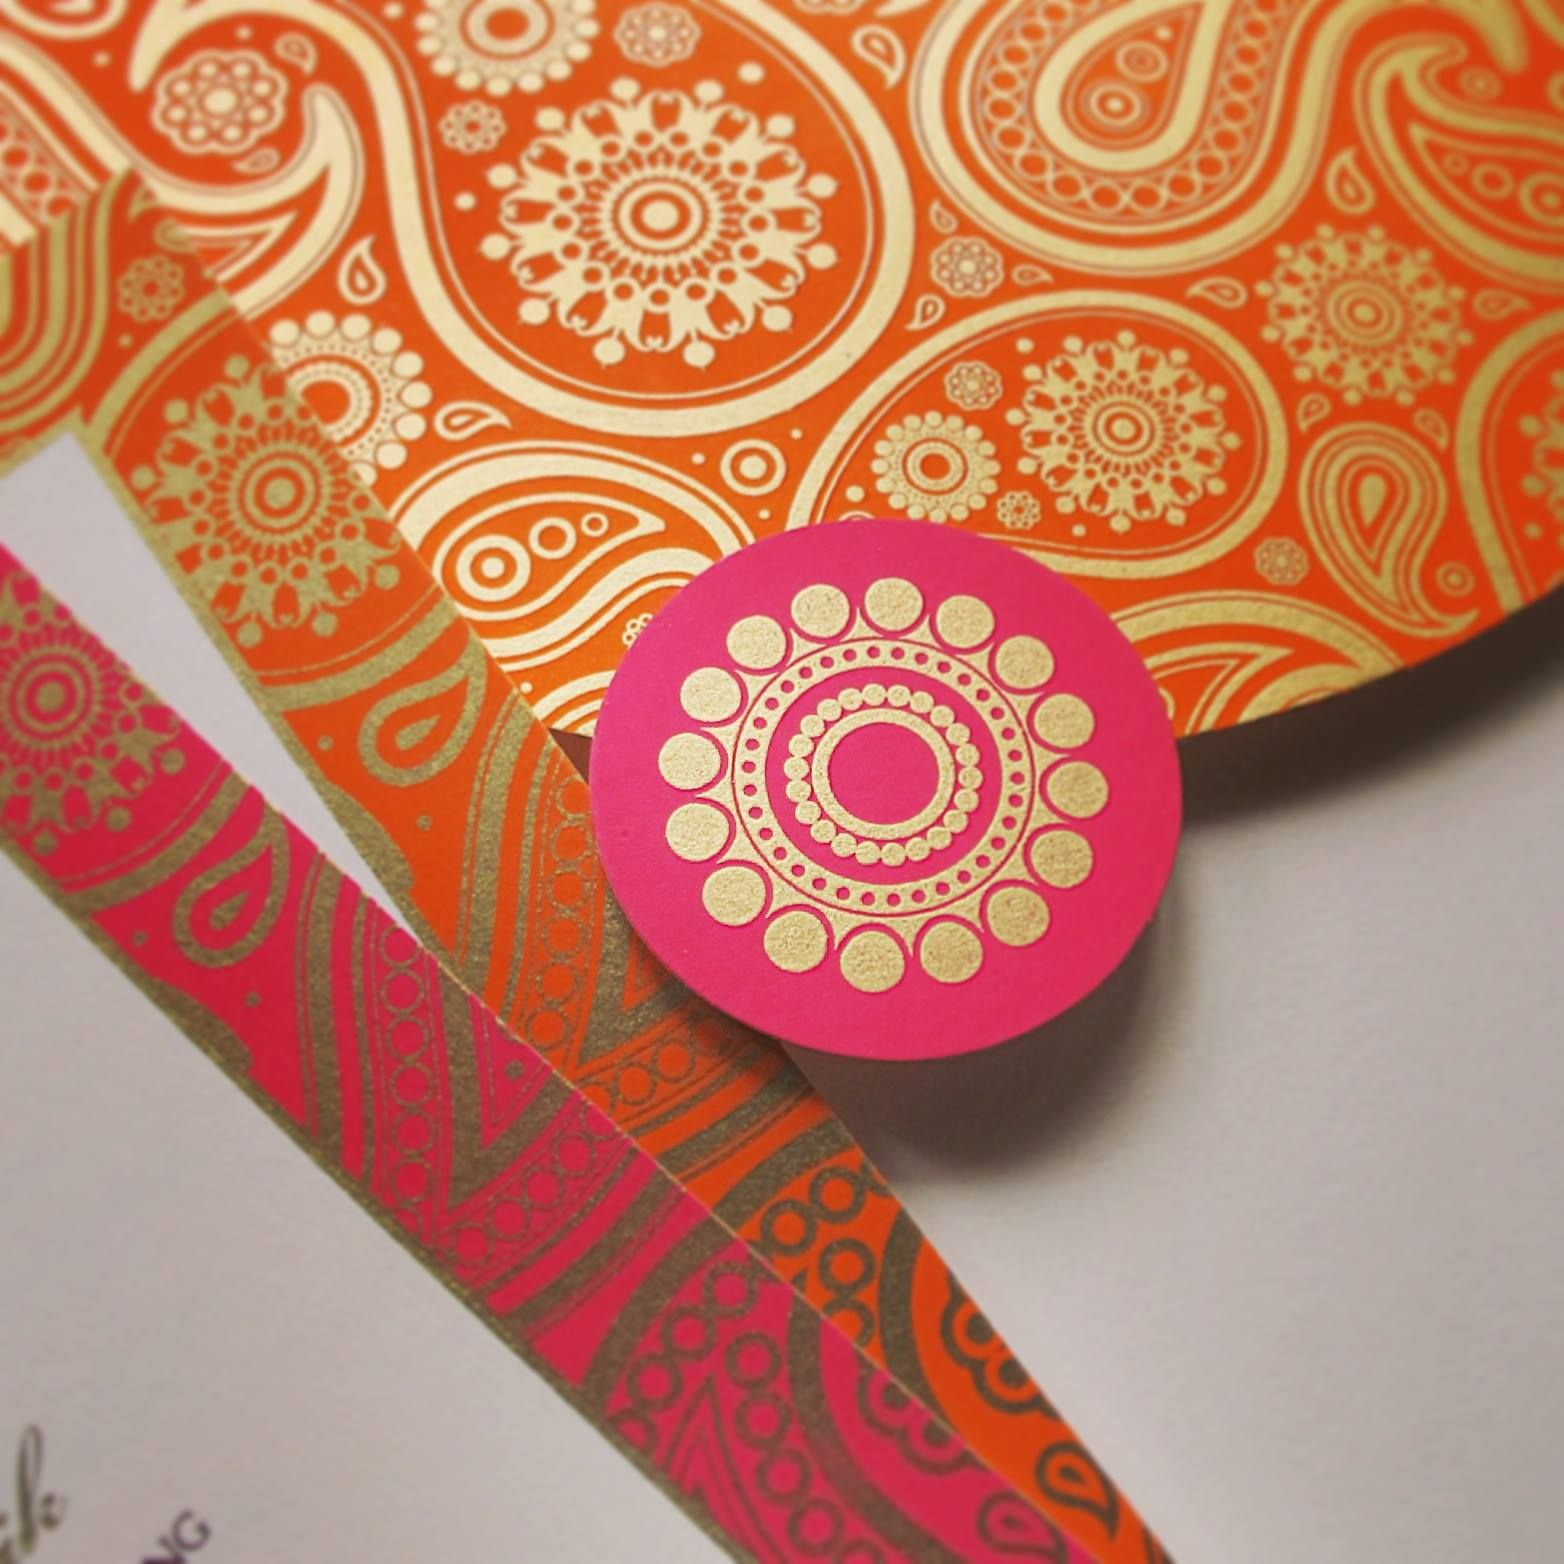 Pin by CUSTOMIZING CREATIVITY on Invitations & Stationery ...